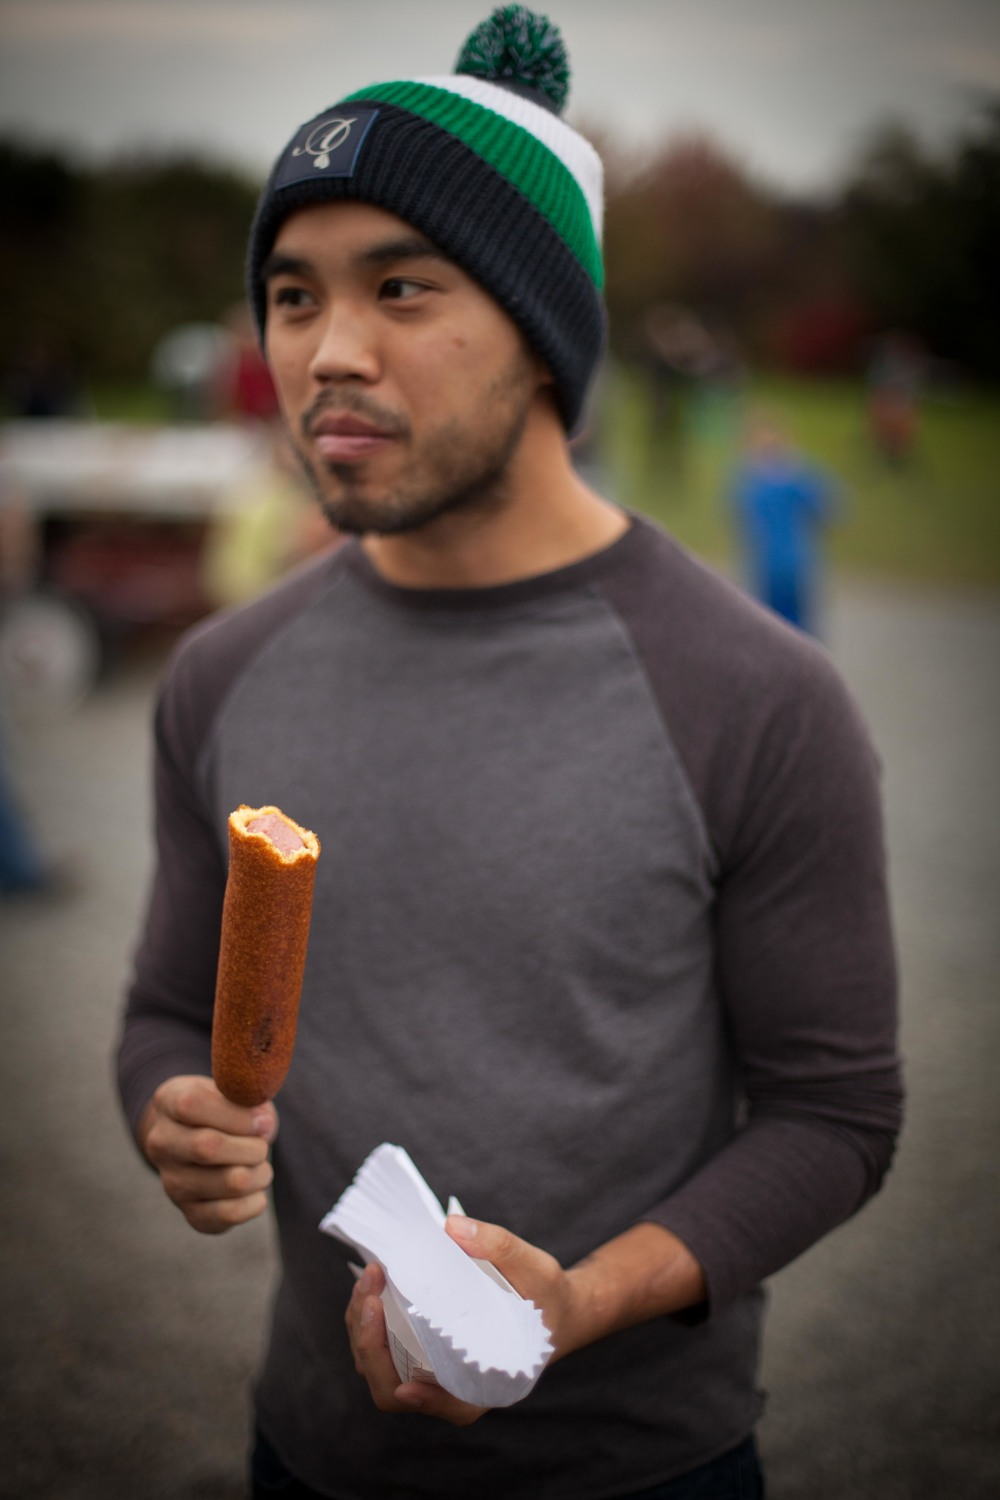 This is the face of someone who is excited about a corn dog